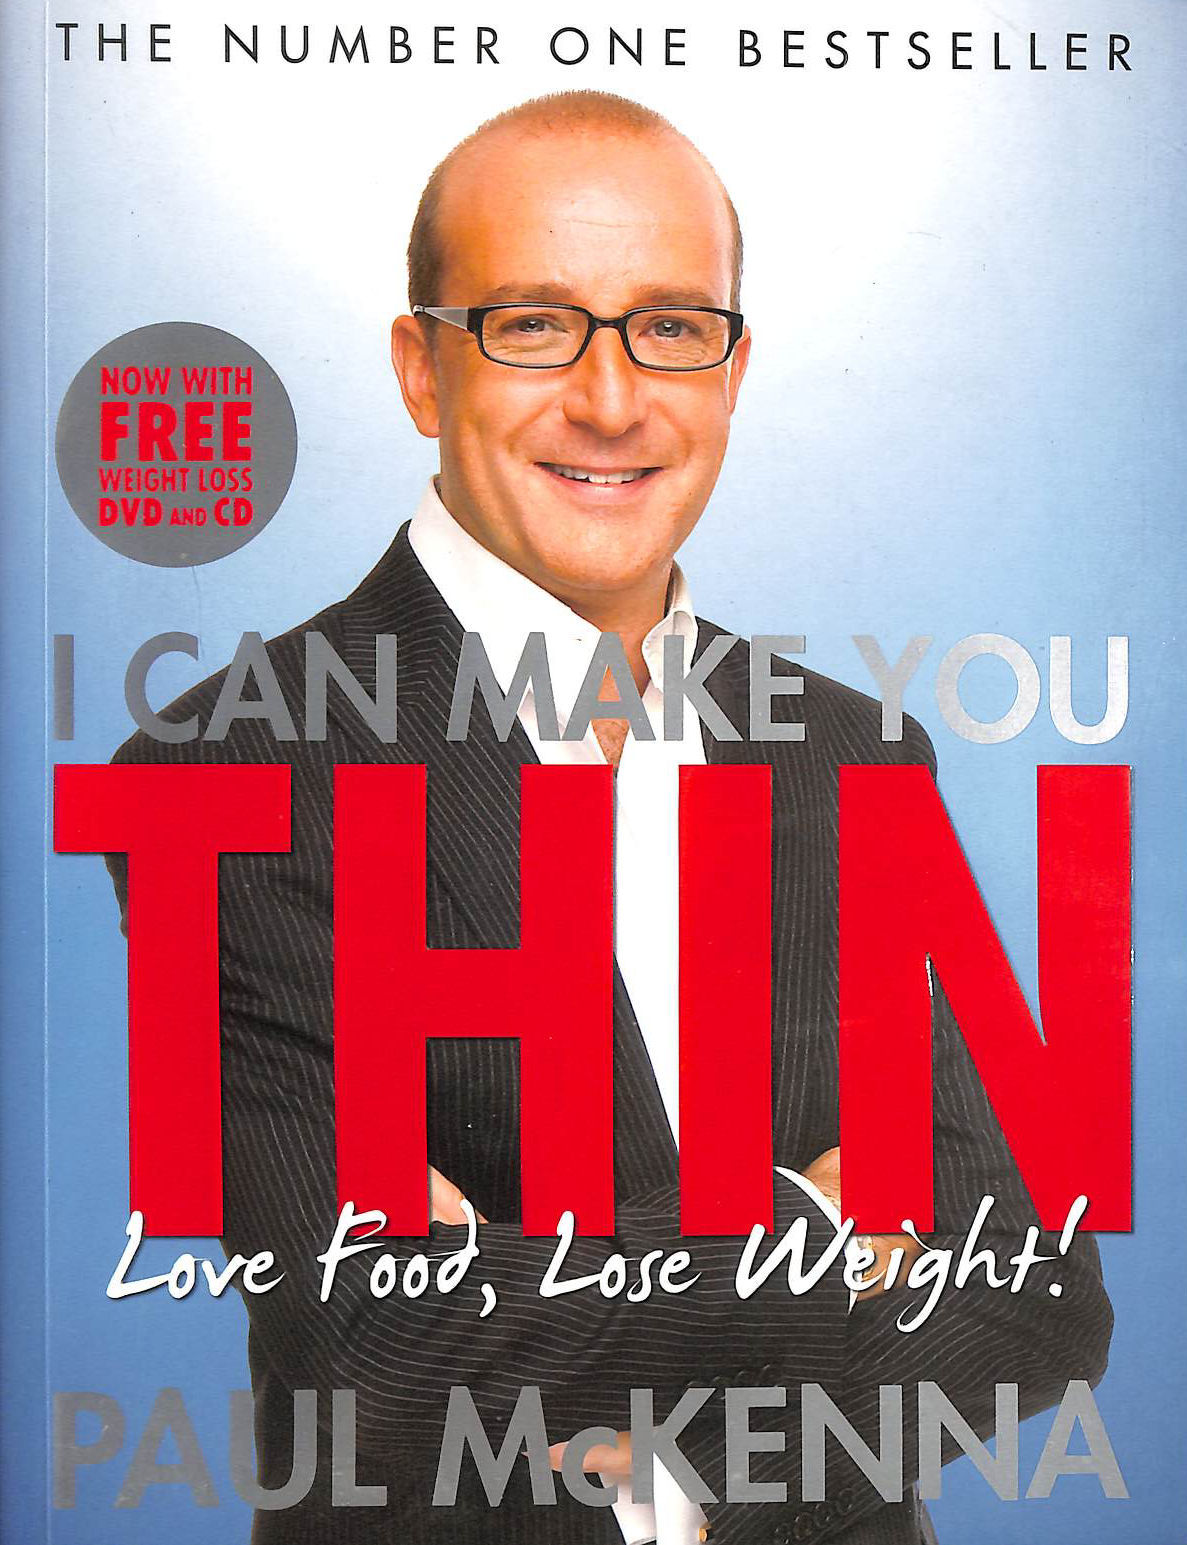 I Can Make You Thin - Love Food, Lose Weight: New Full Colour Edition (includes free DVD and CD), McKenna, Paul